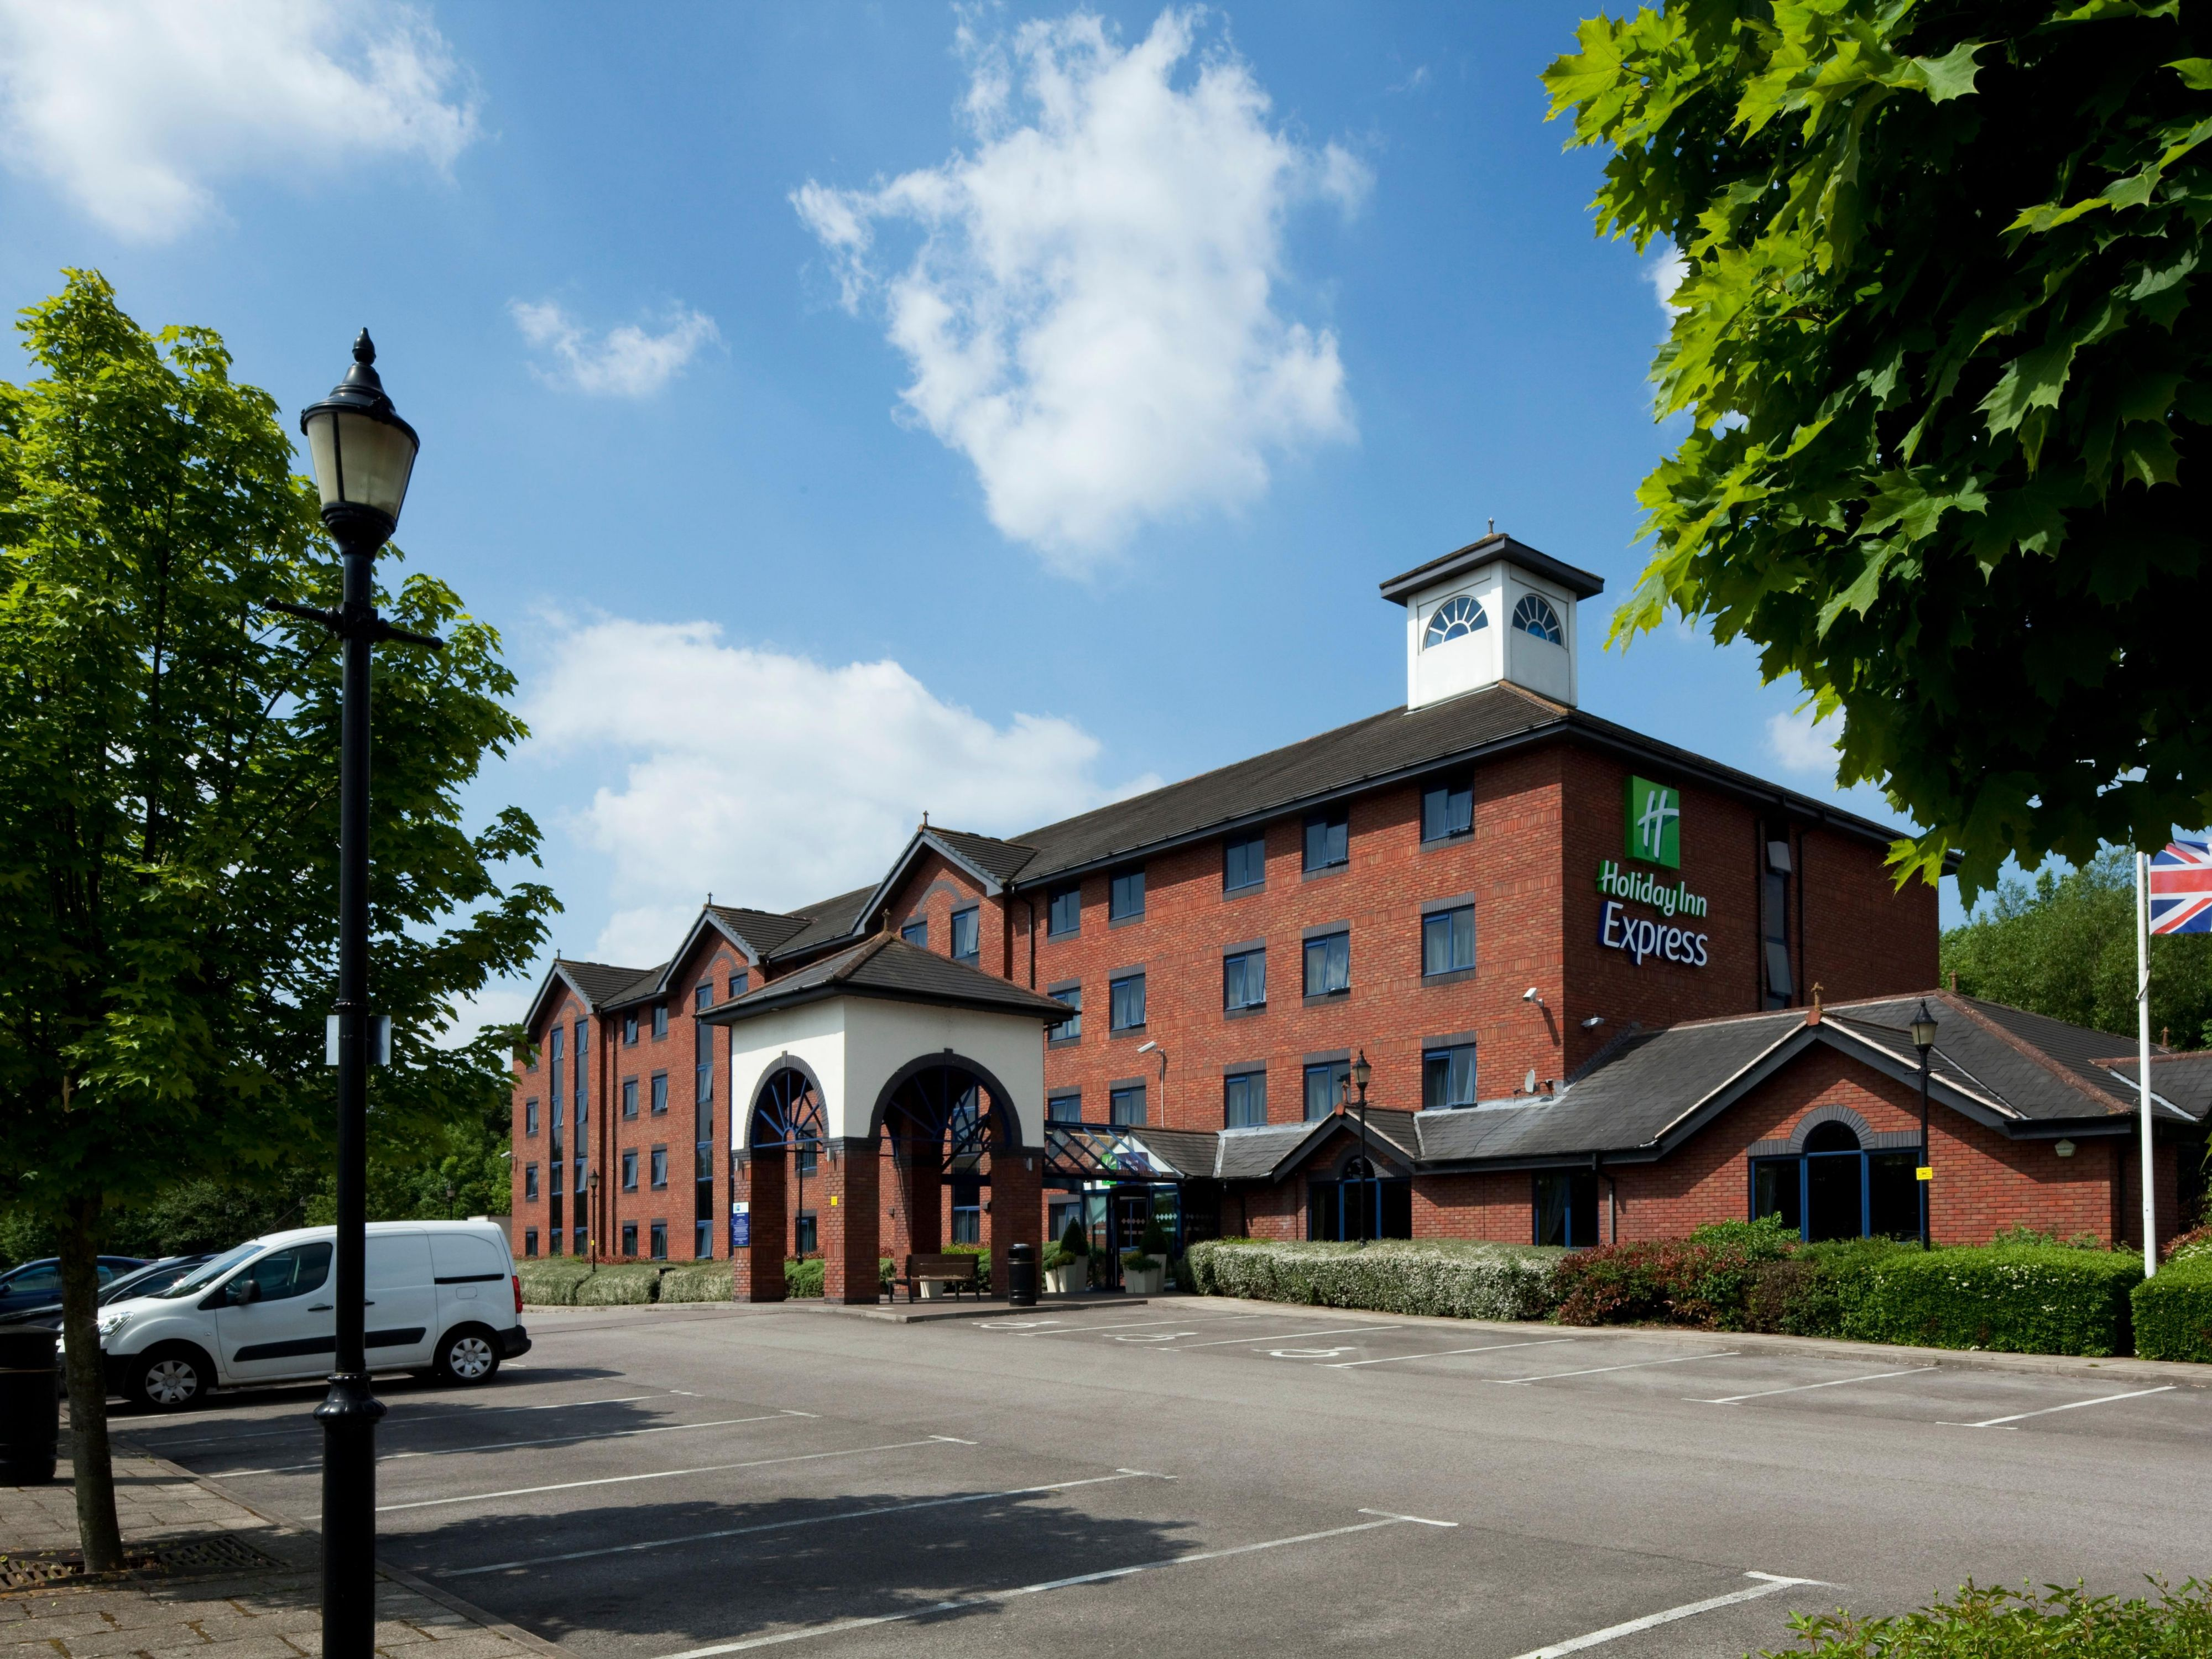 Our hotel is located just off Junction 13 of the M6